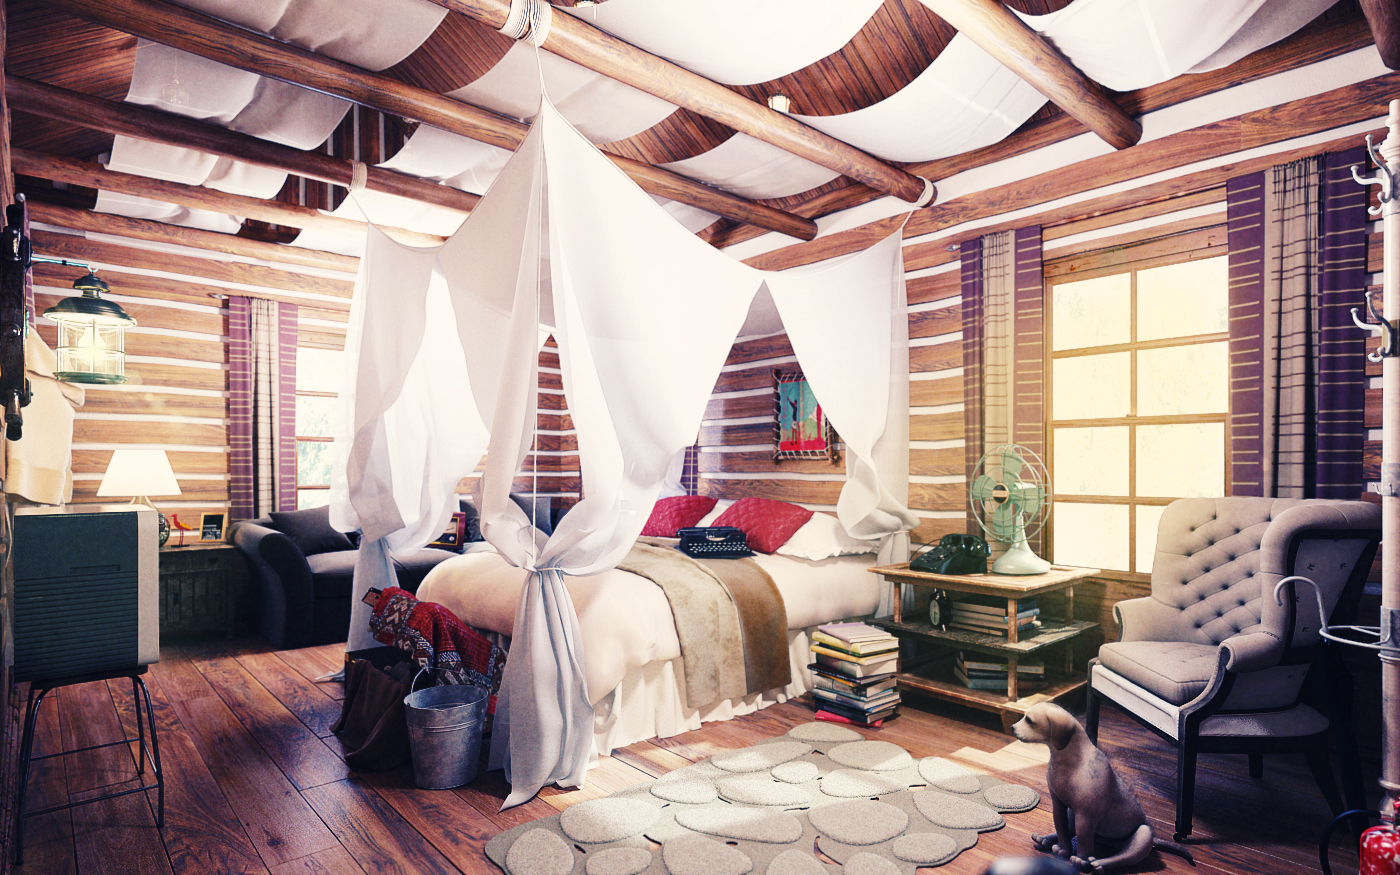 interior.bedroom.02.01 by pitposum